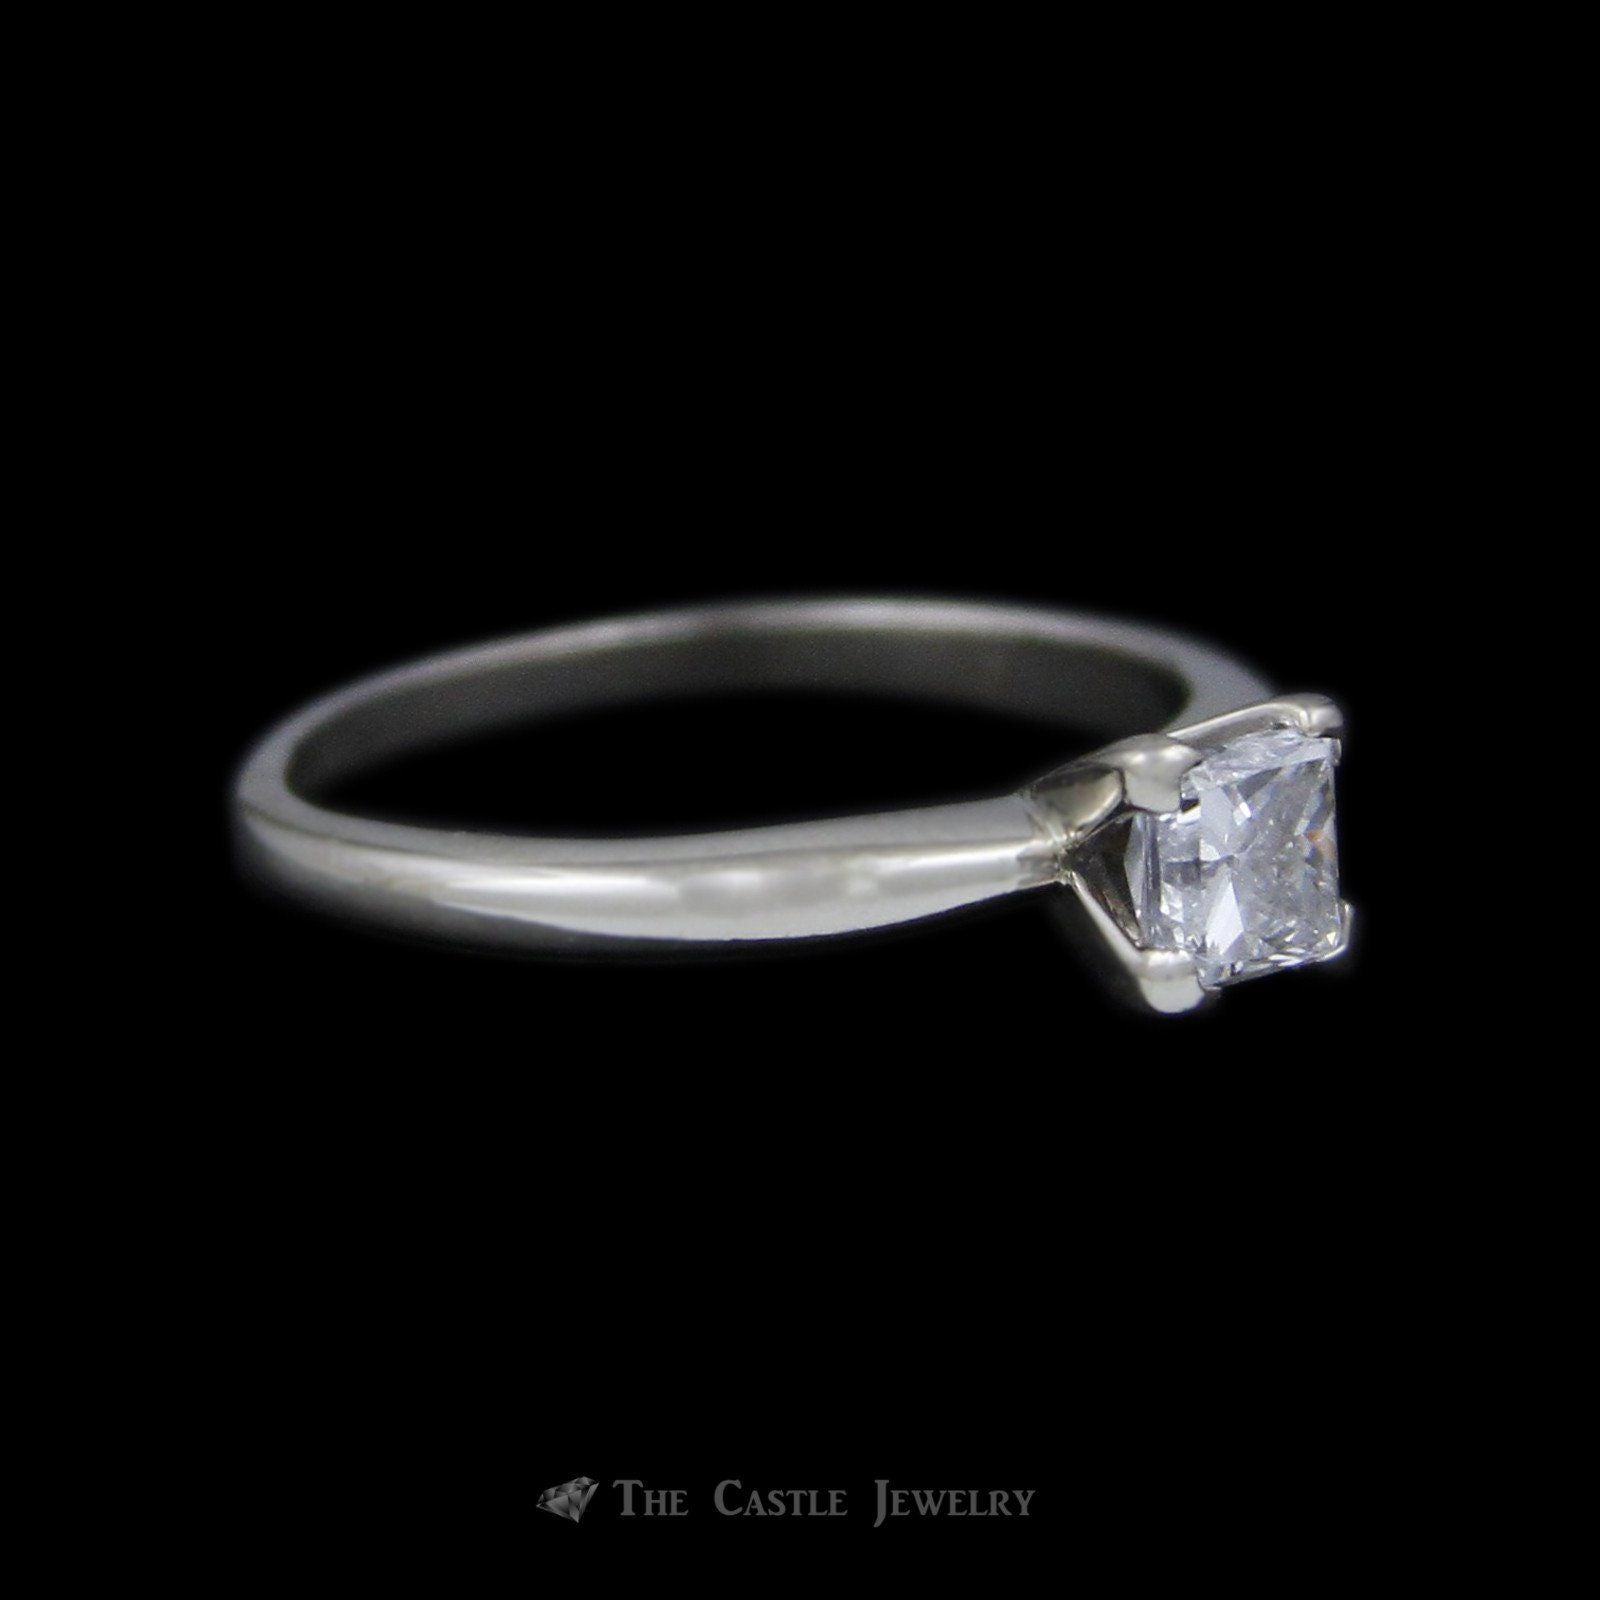 Princess Cut Diamond Solitaire .55 carat Engagement Ring in 14K White Gold-2